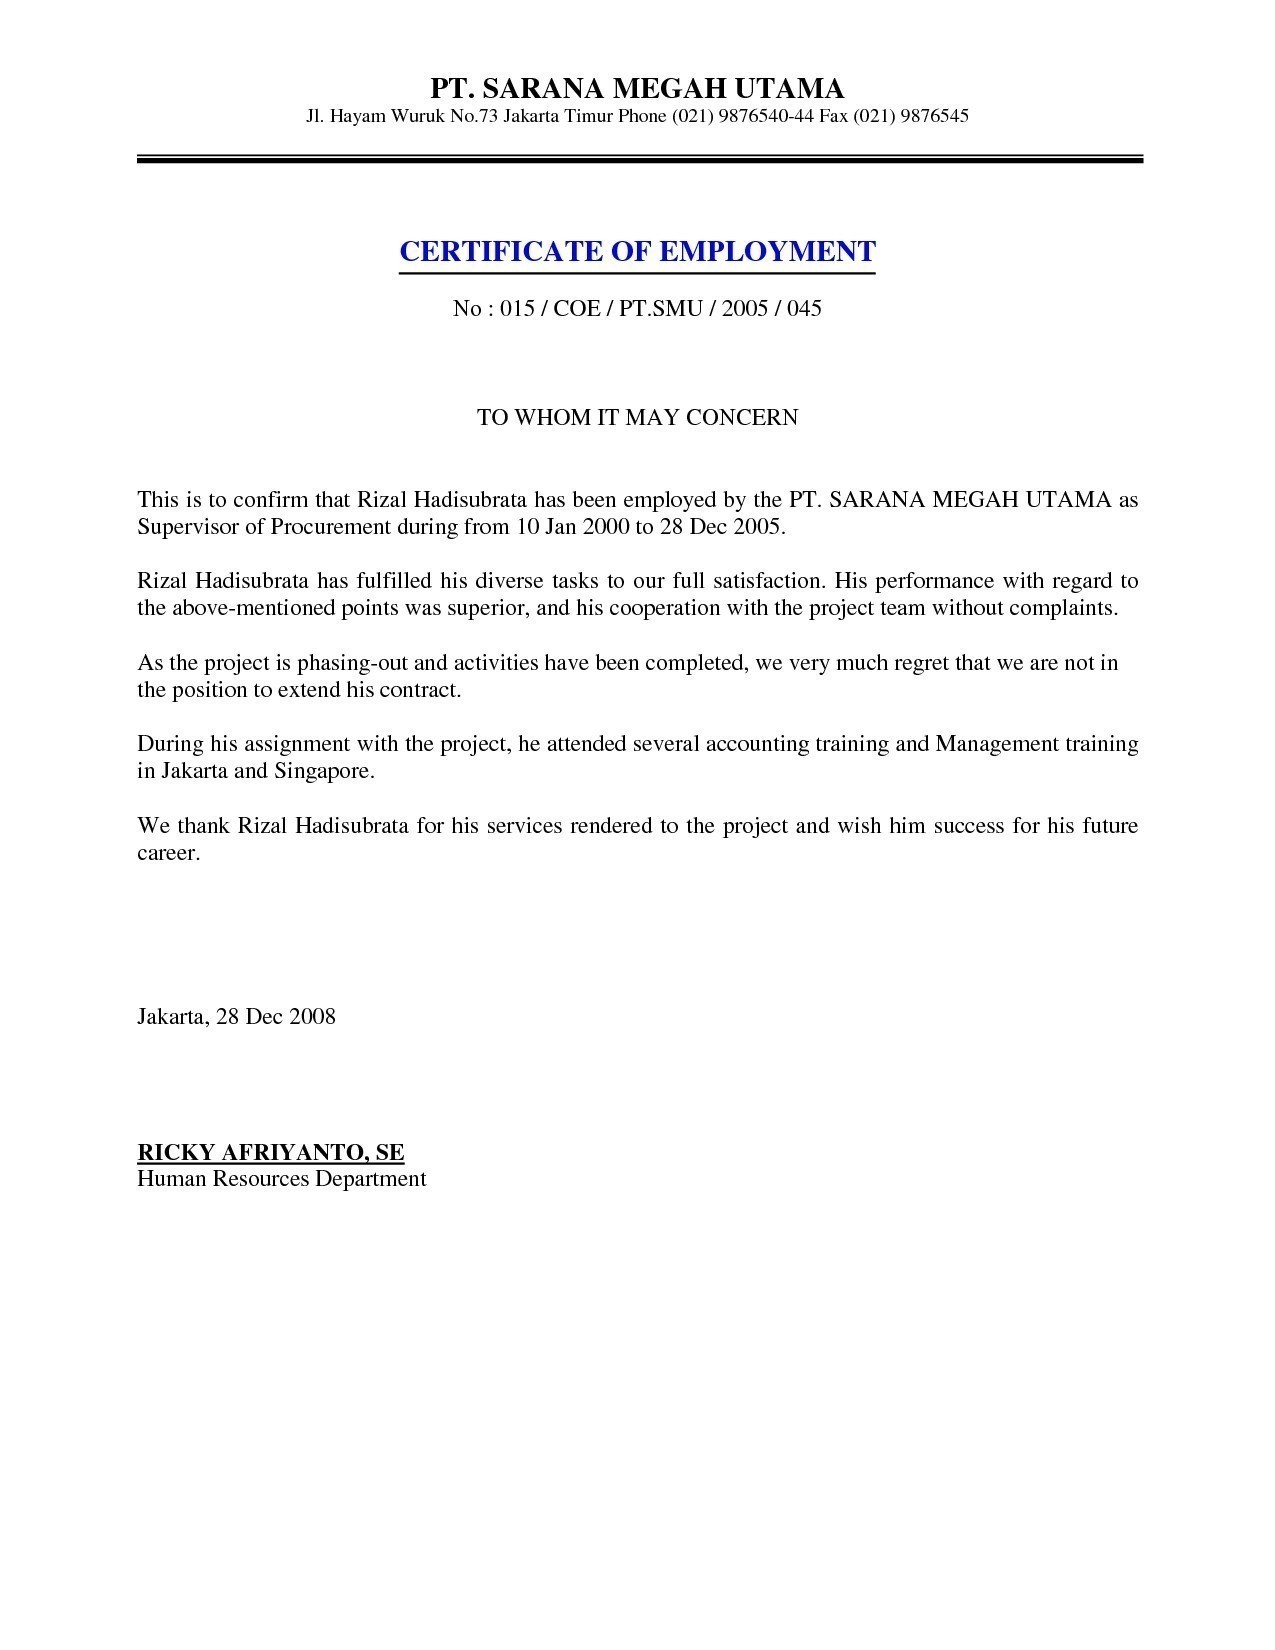 Confirmation Of Employment Letter Template - Sample Certificate Employment with Salary Indicated Best